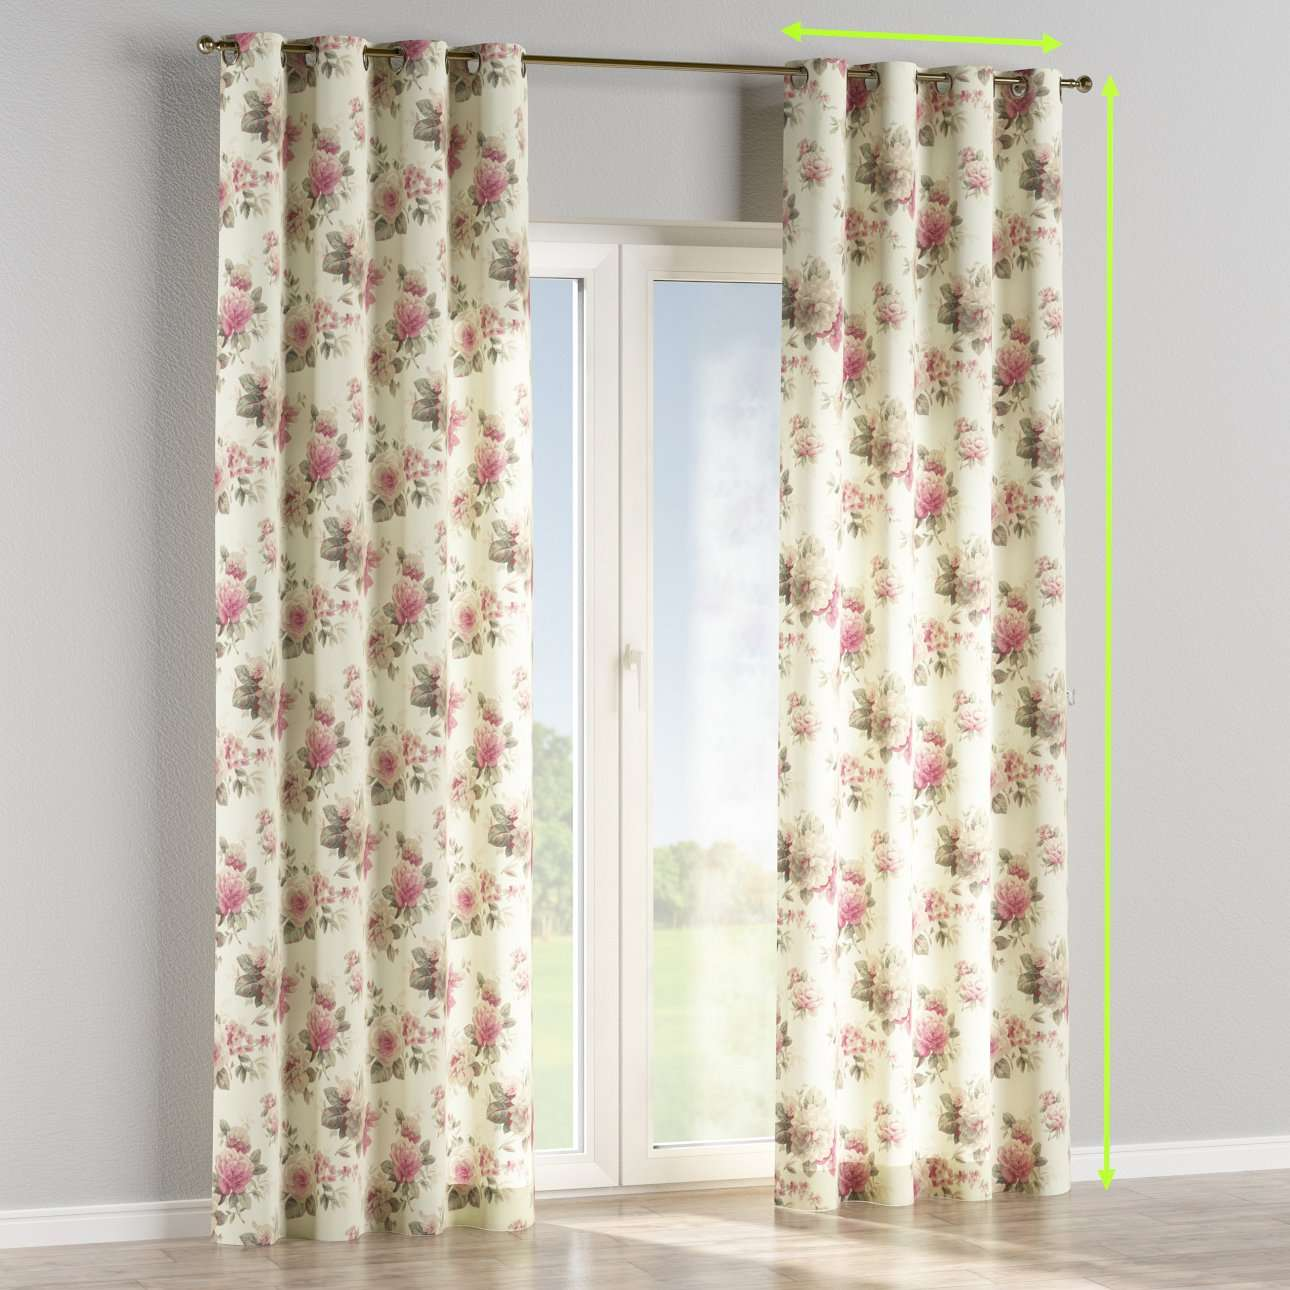 Eyelet lined curtains in collection Mirella, fabric: 141-07